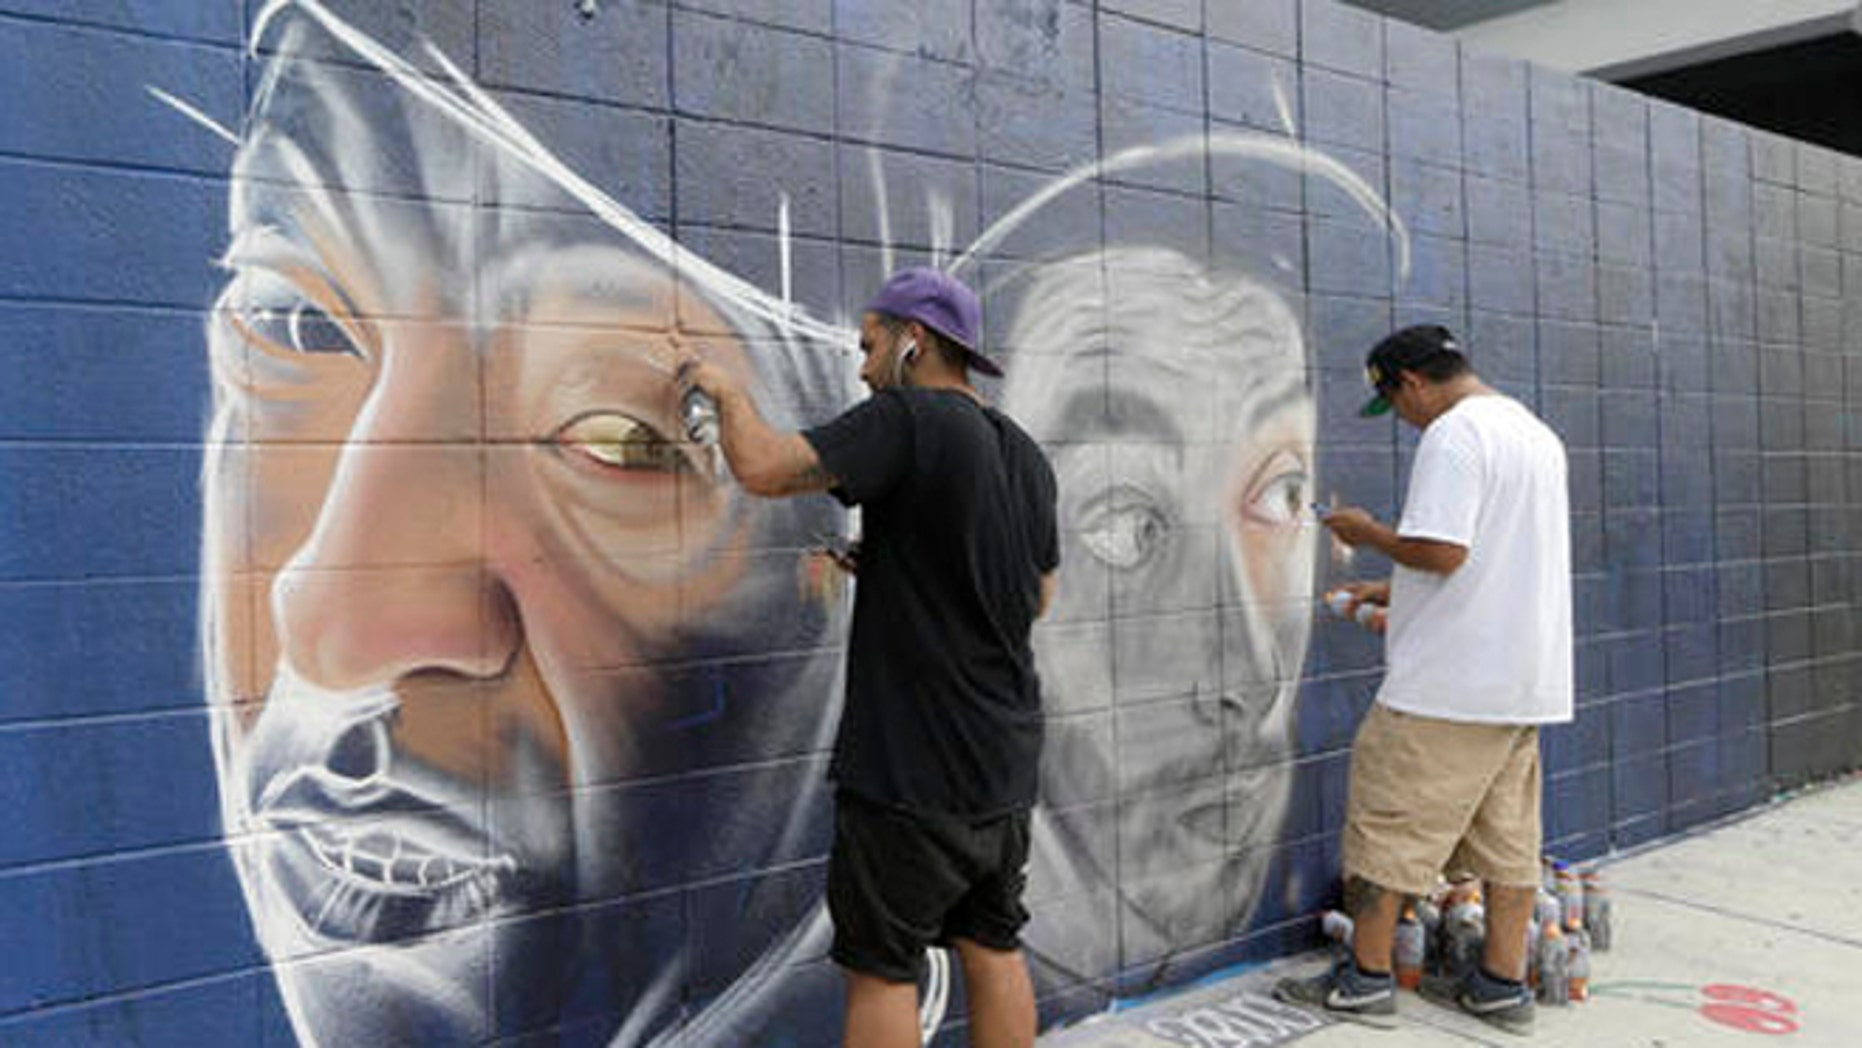 Artists Theo Magma, of Spain, left, and Koka, of Mexico, right, work on a mural, Friday, Dec. 2, 2016, in the Wynwood Art District in Miami, as the annual Art Basel festival continues, featuring poolside parties, blocks of art fairs and outdoor red carpet events. This marks the 15th year that Art Basel has been held in the Miami area. (AP Photo/Alan Diaz)